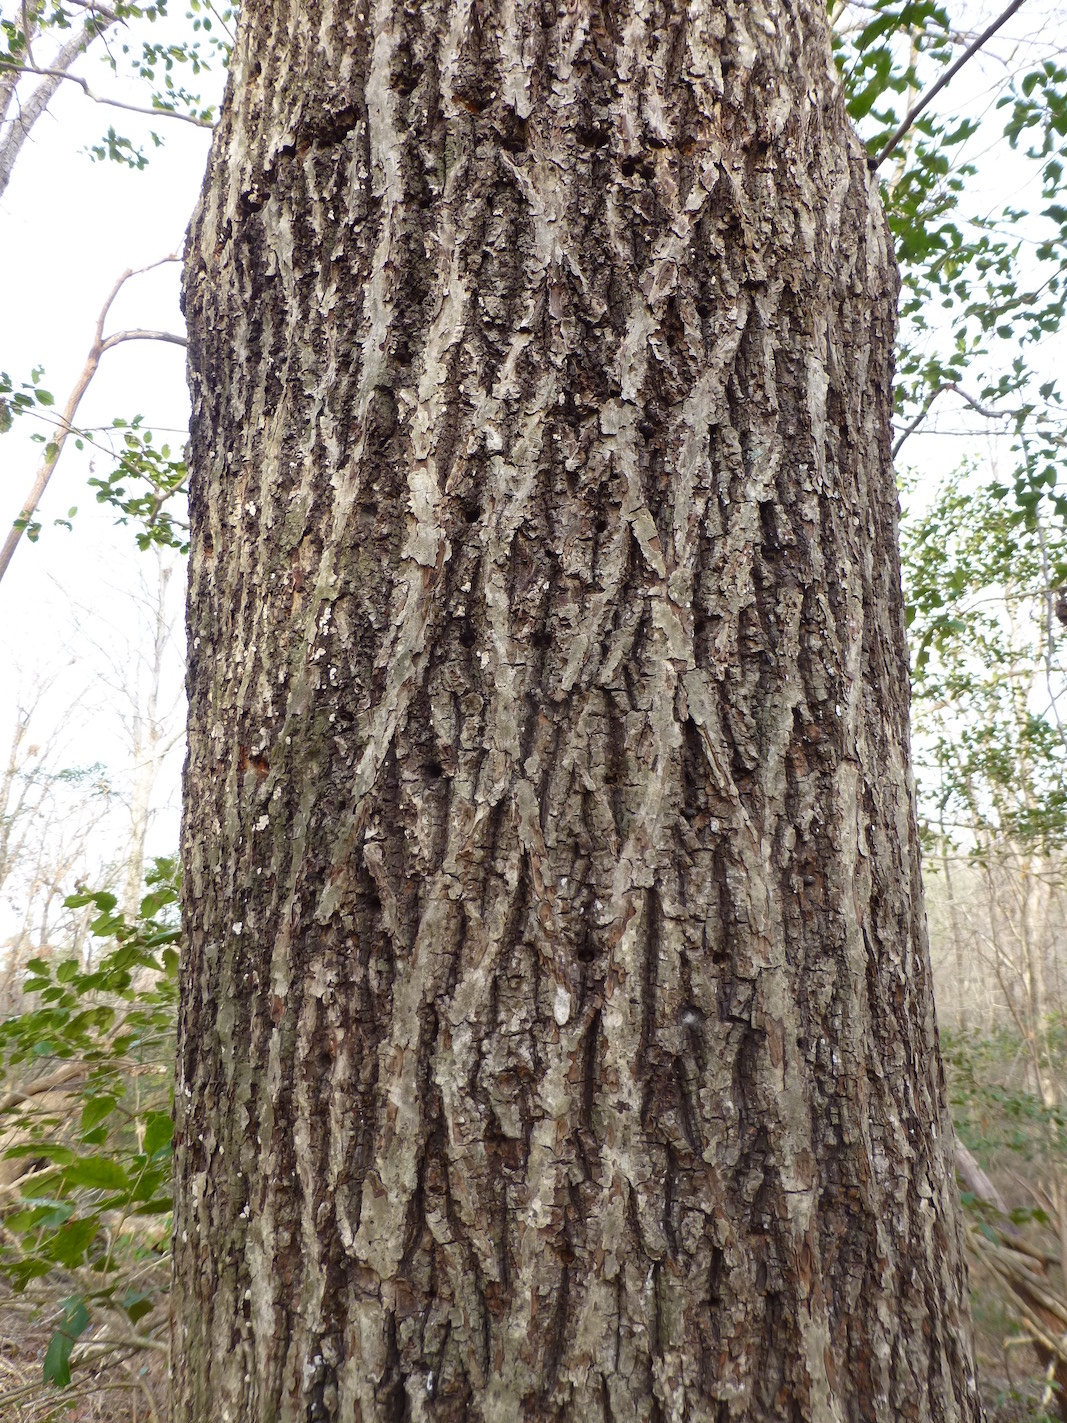 The Scientific Name is Carya glabra. You will likely hear them called Pignut Hickory, Smooth Pignut. This picture shows the Bark has tight ridges and is not shaggy. of Carya glabra